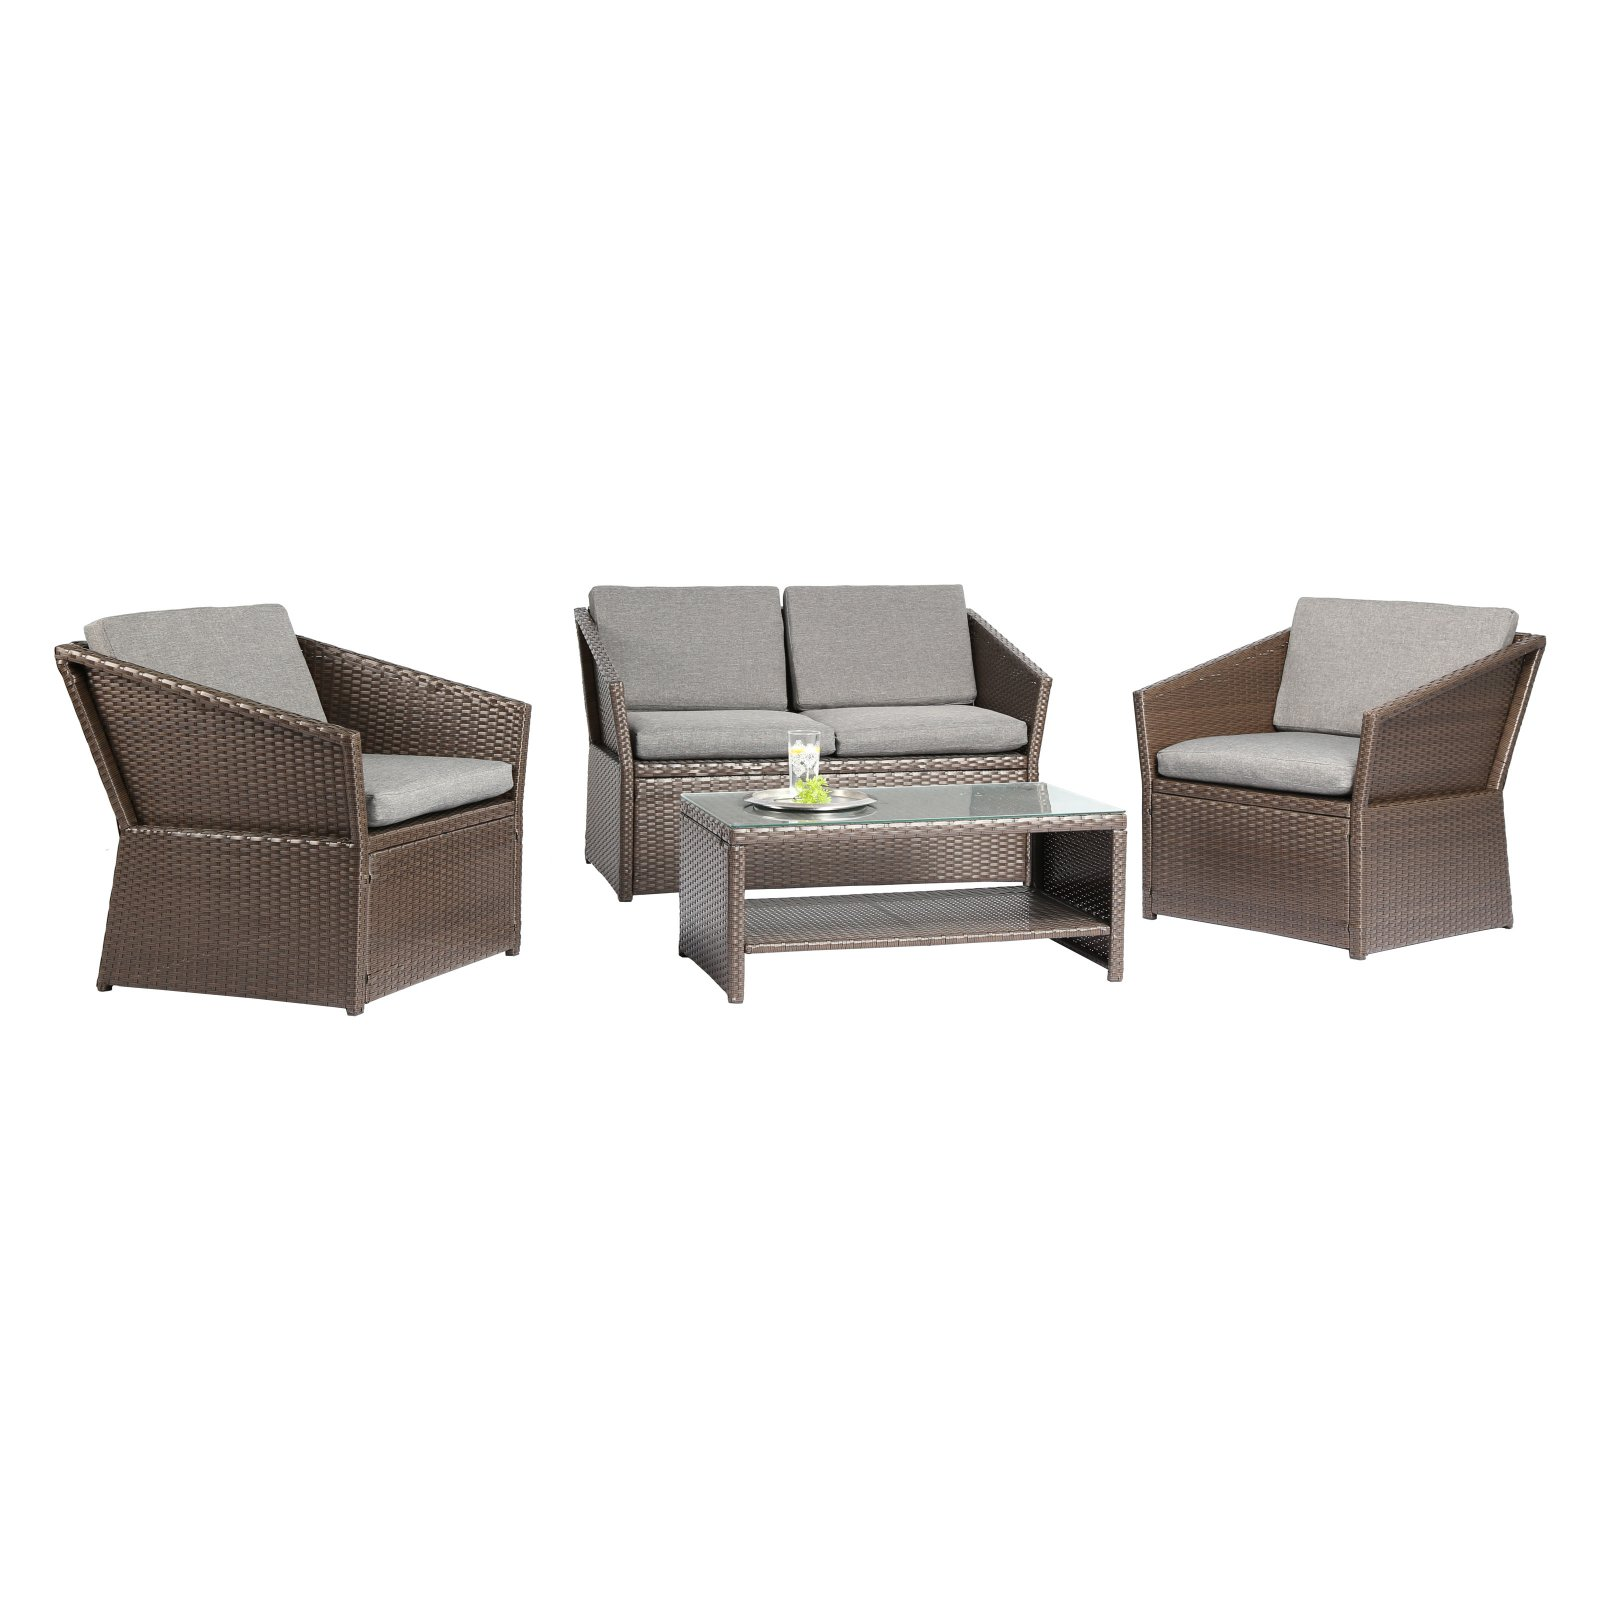 Baner Garden Outdoor Furniture Complete Patio Cushion PE Wicker Rattan Garden Set, Brown,... by